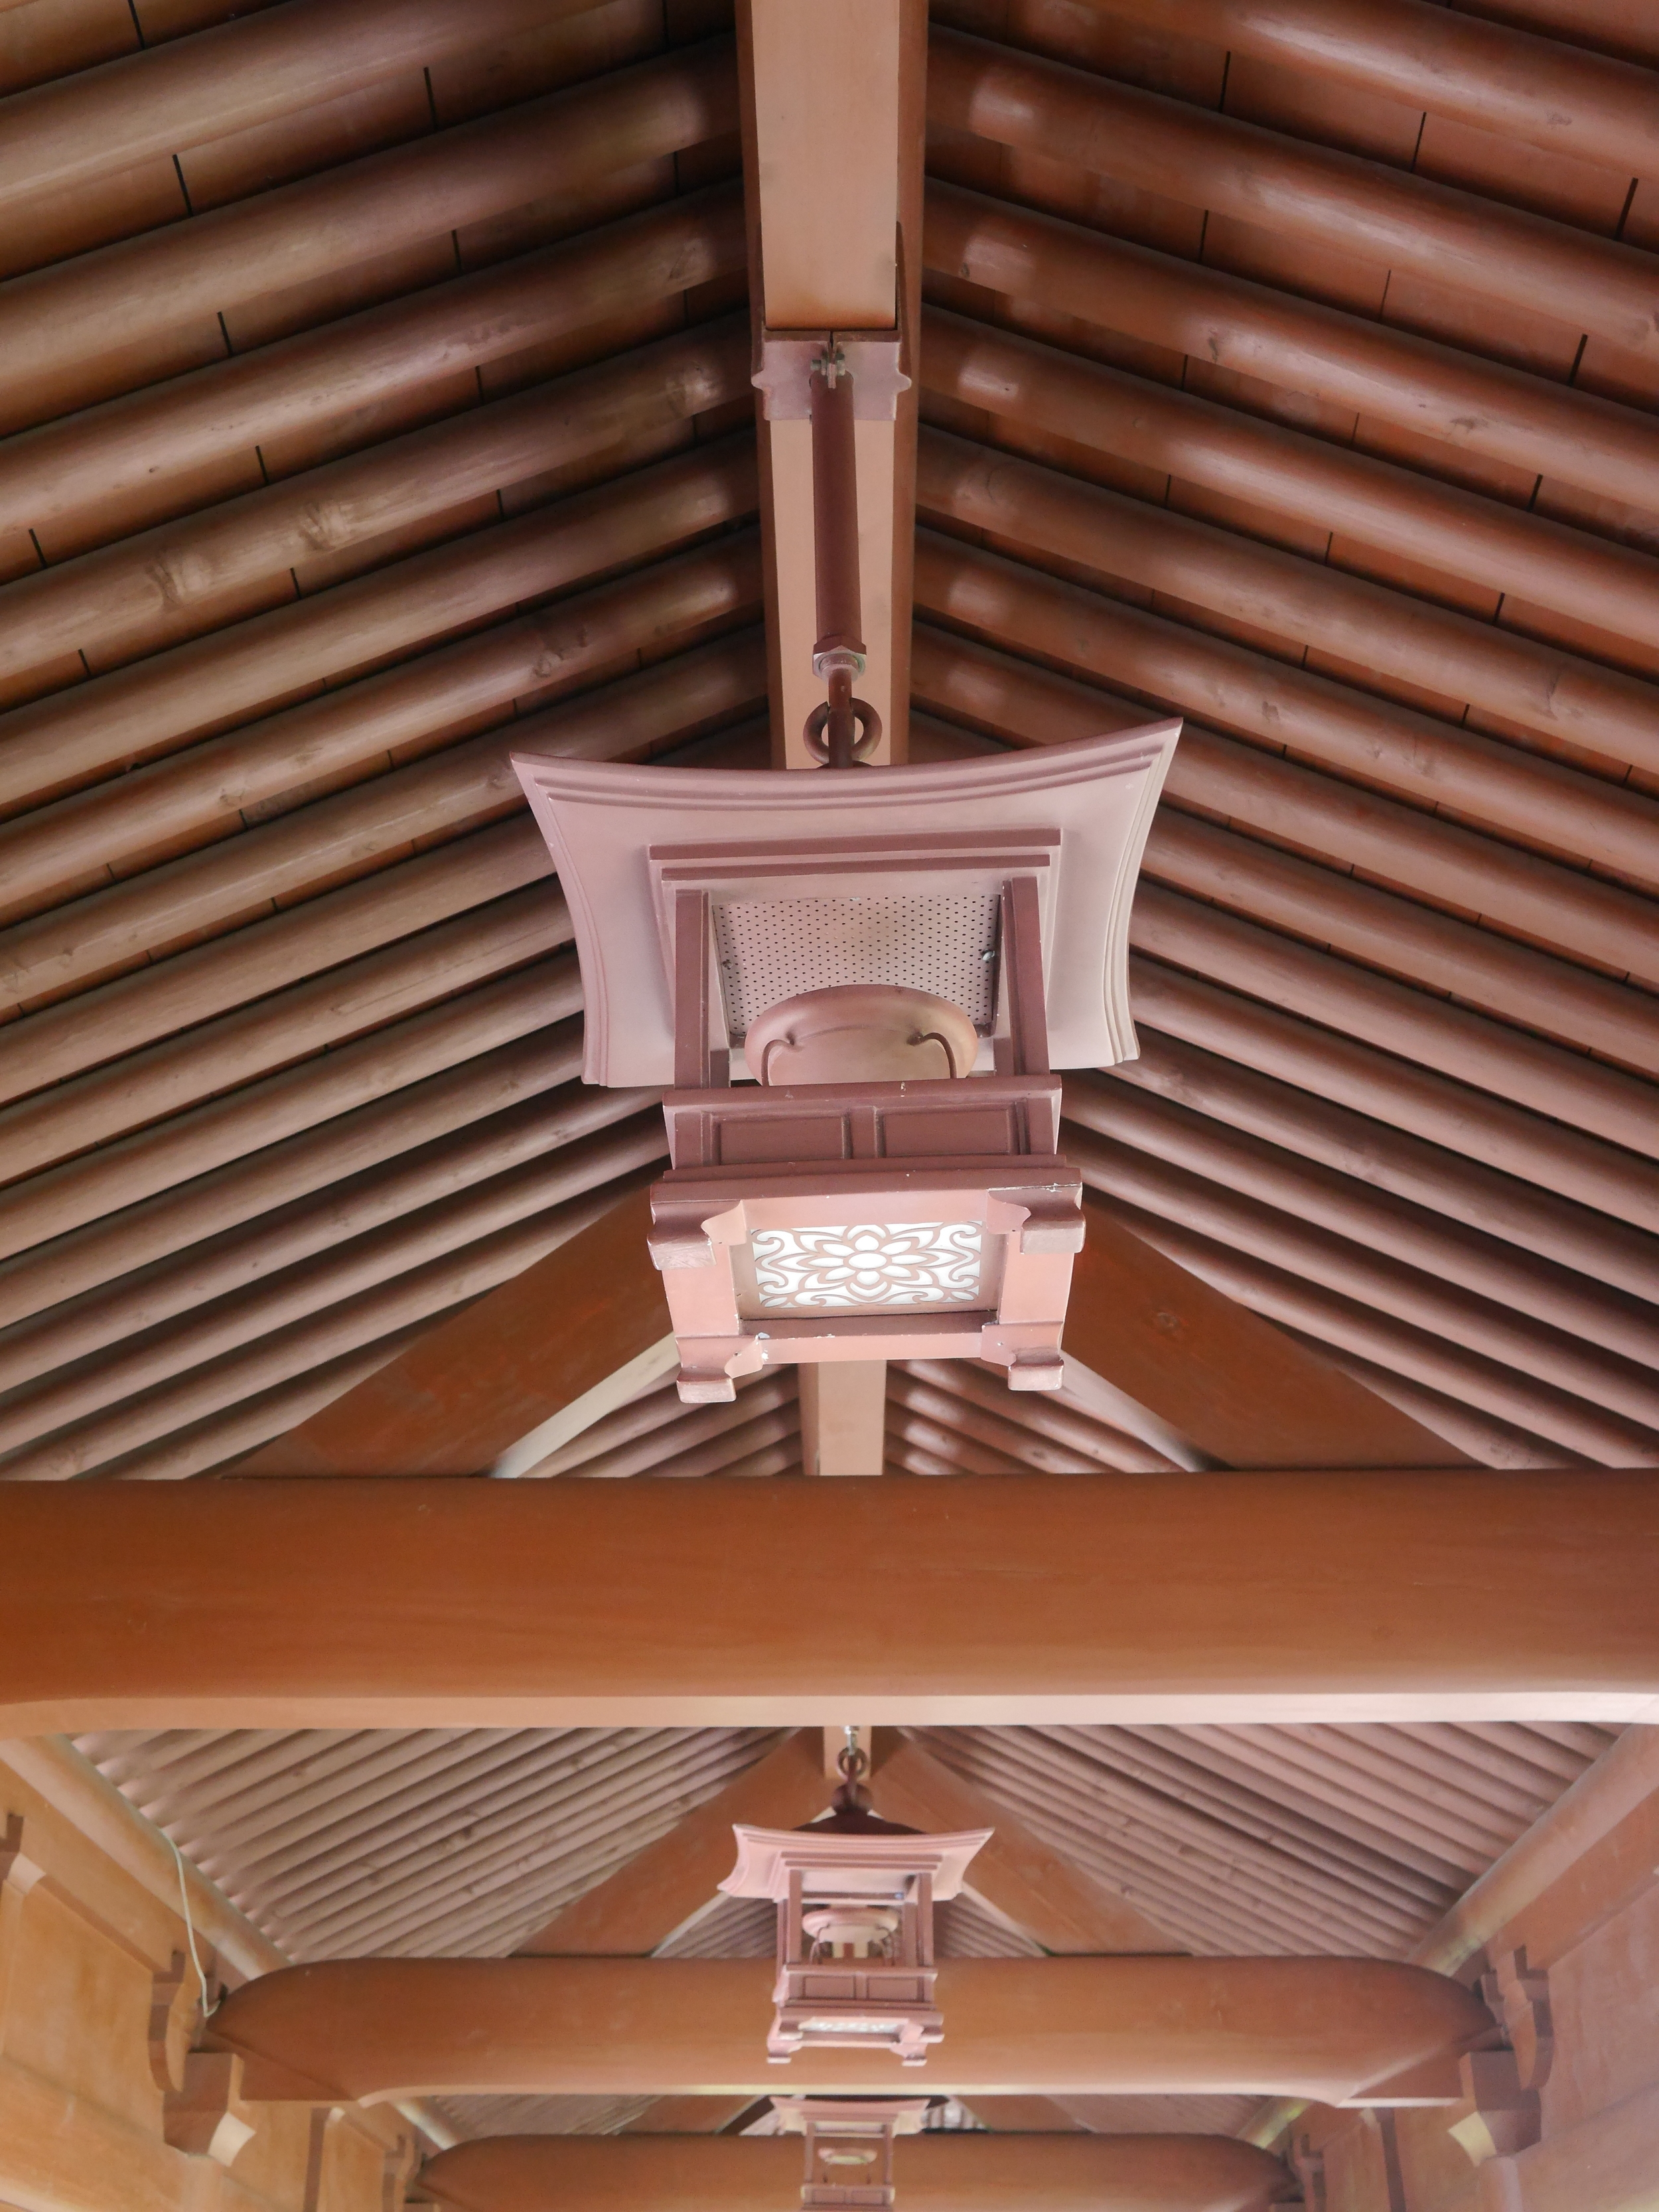 One of the ceilings. I guess the lamps are not made of wood.